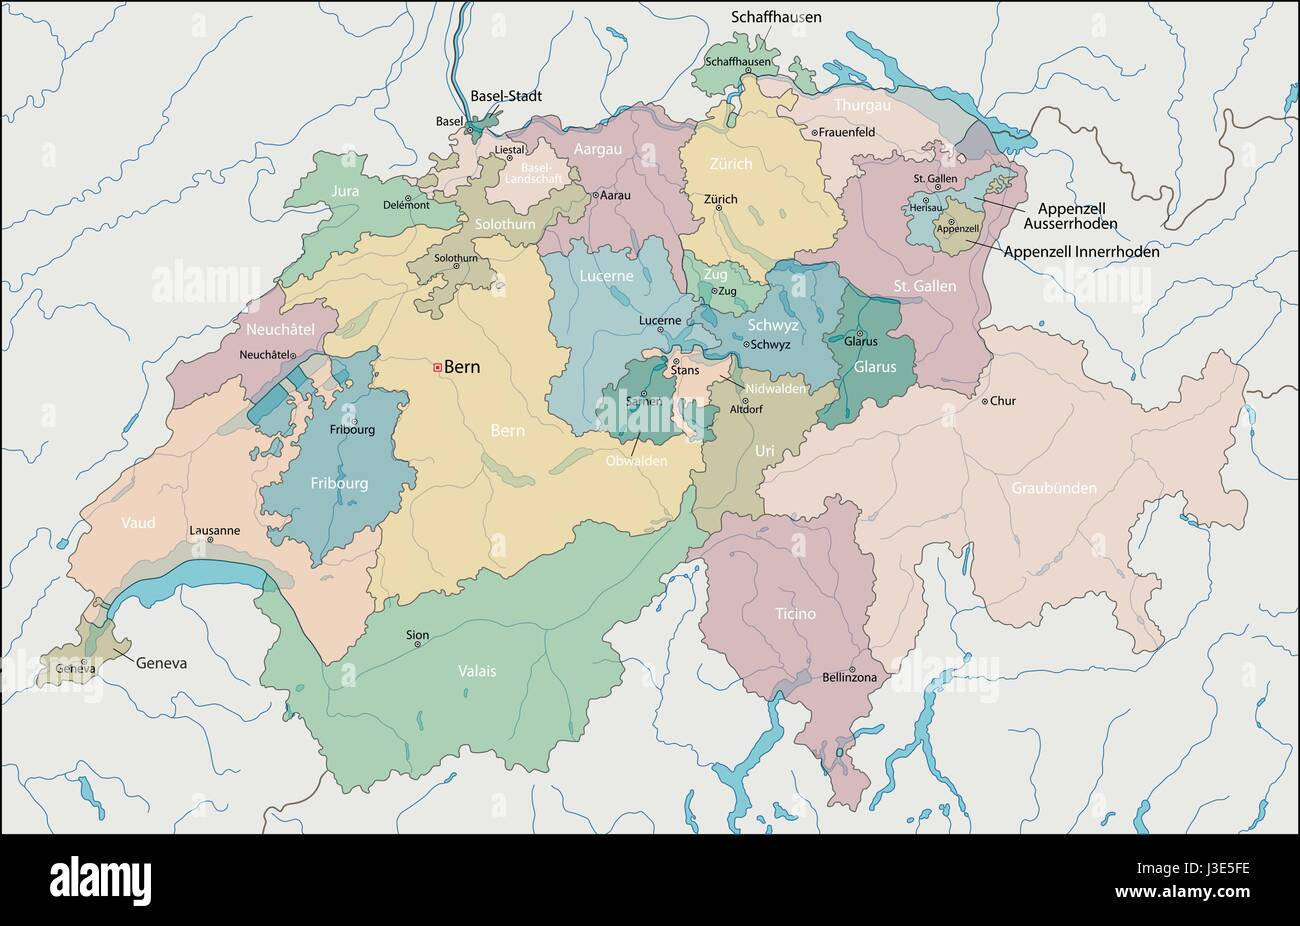 Map of Switzerland - Stock Vector